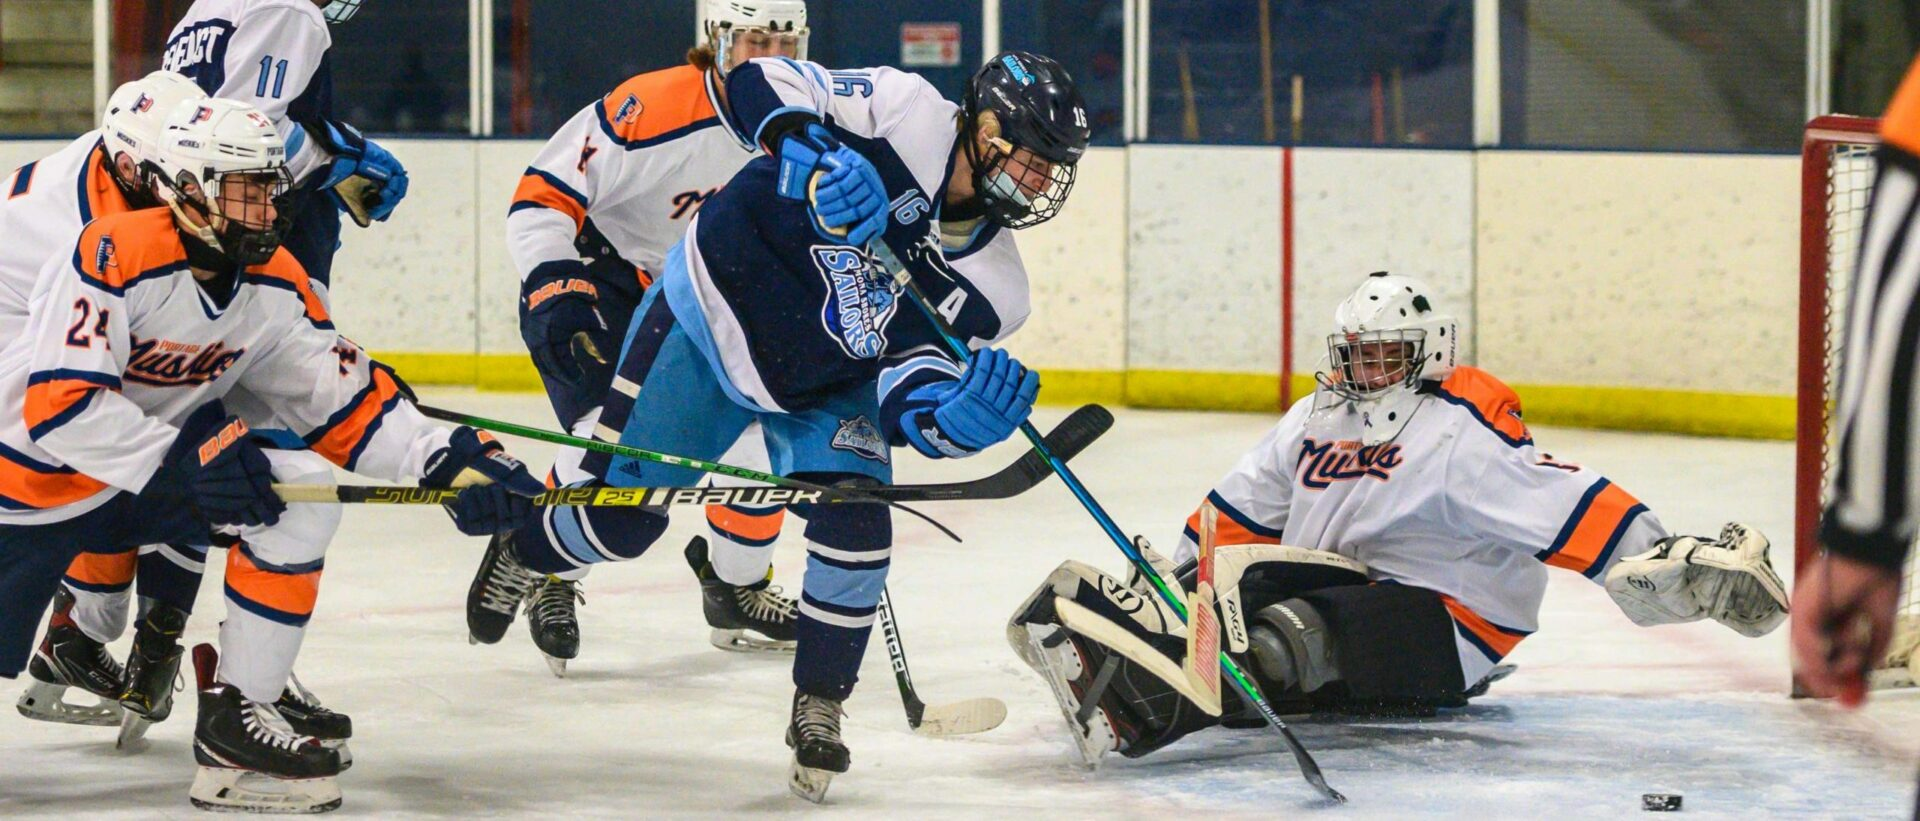 Mona Shores hockey team beats Portage Northern, advances to D2 regional finals, behind four goals from Andrew Taylor